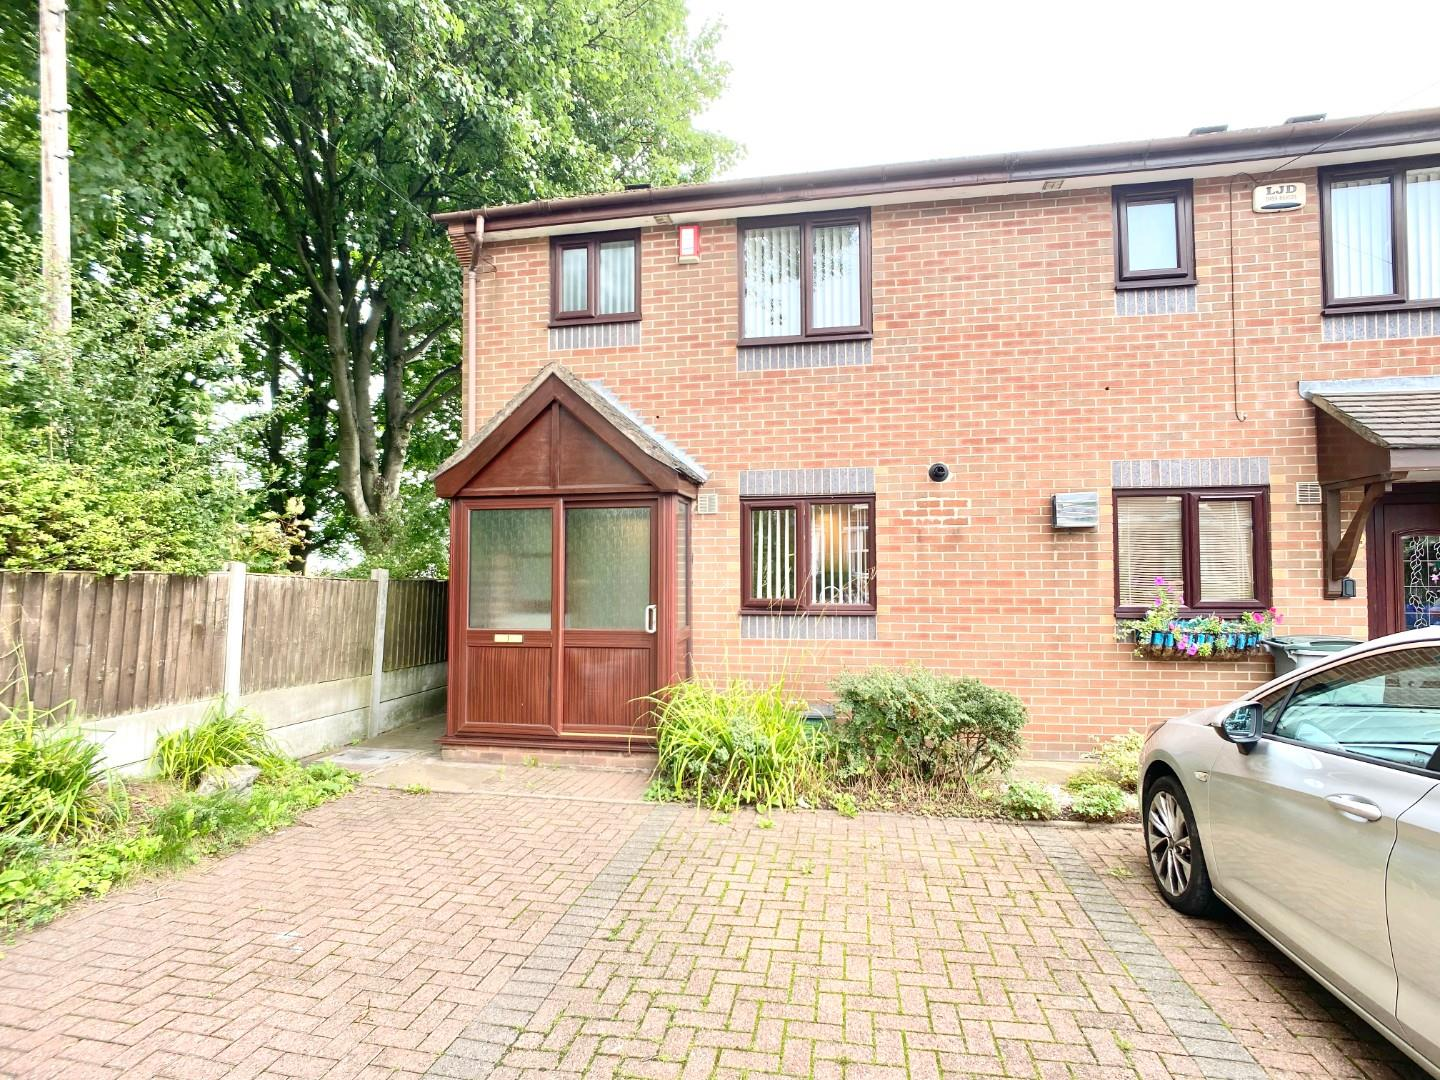 3 bed end of terrace house to rent in Victoria Street, Staffordshire 0